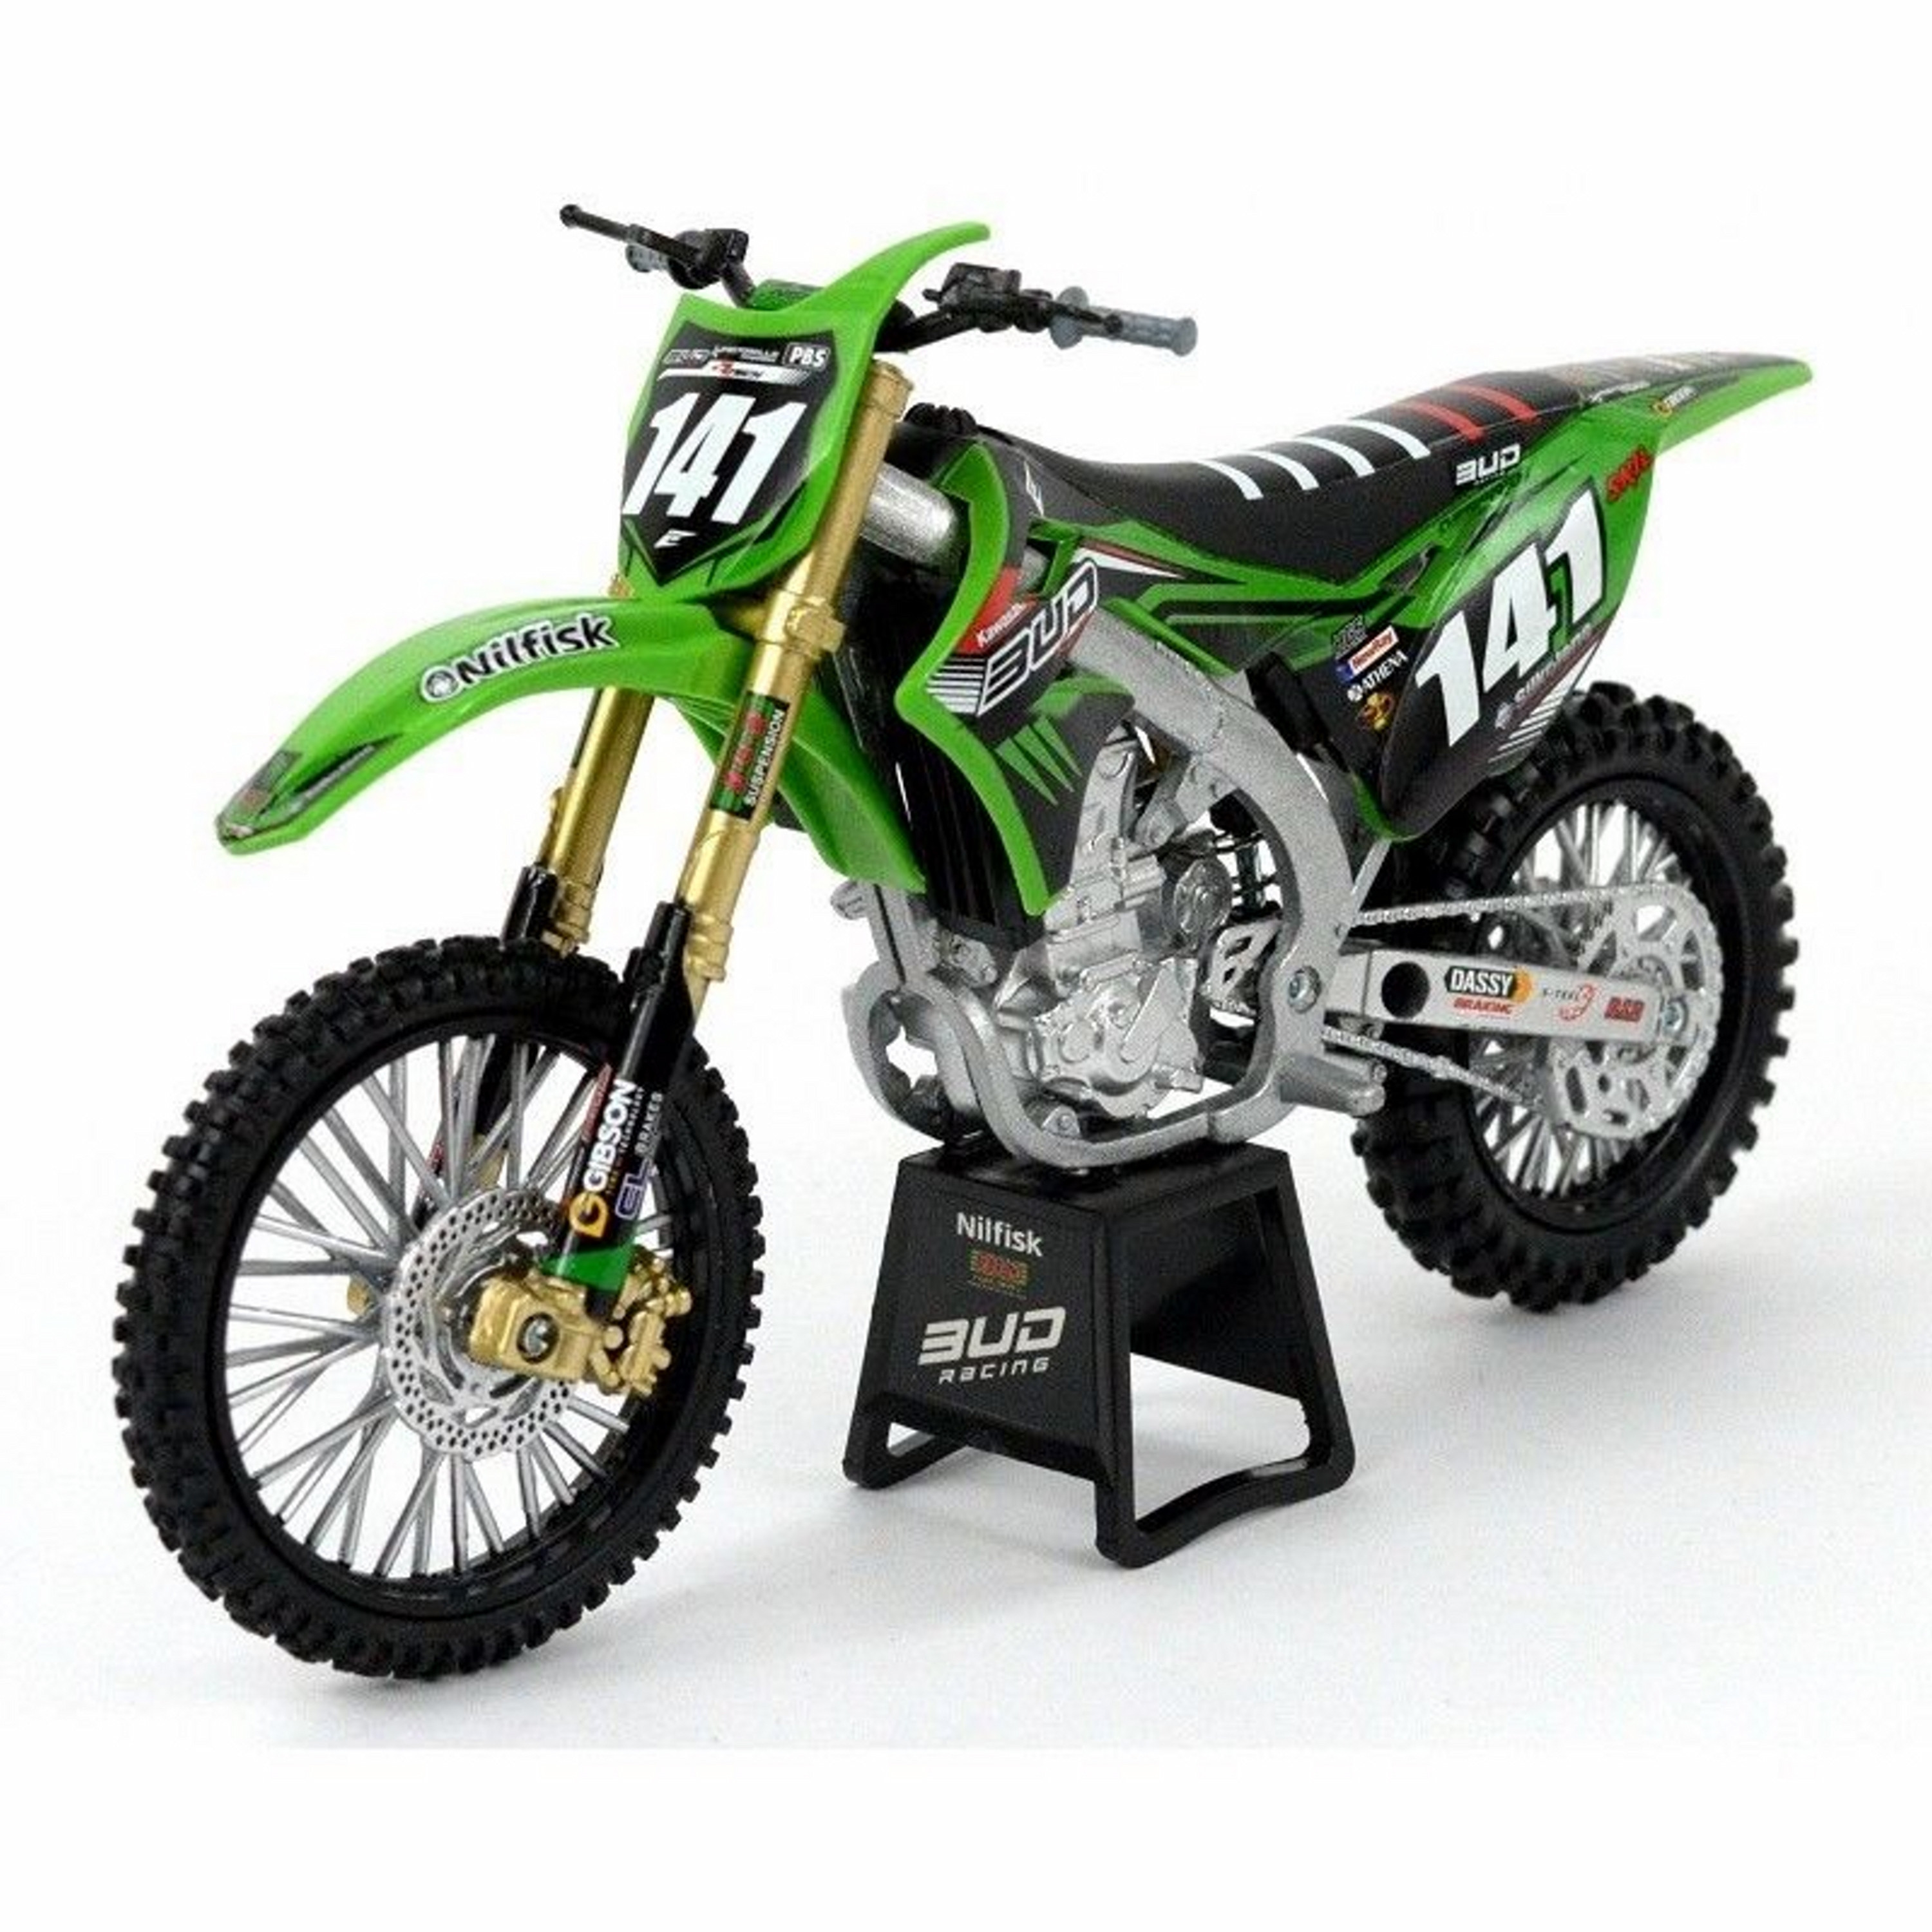 New-Ray, 1:12 Kawasaki/ Bud Racing